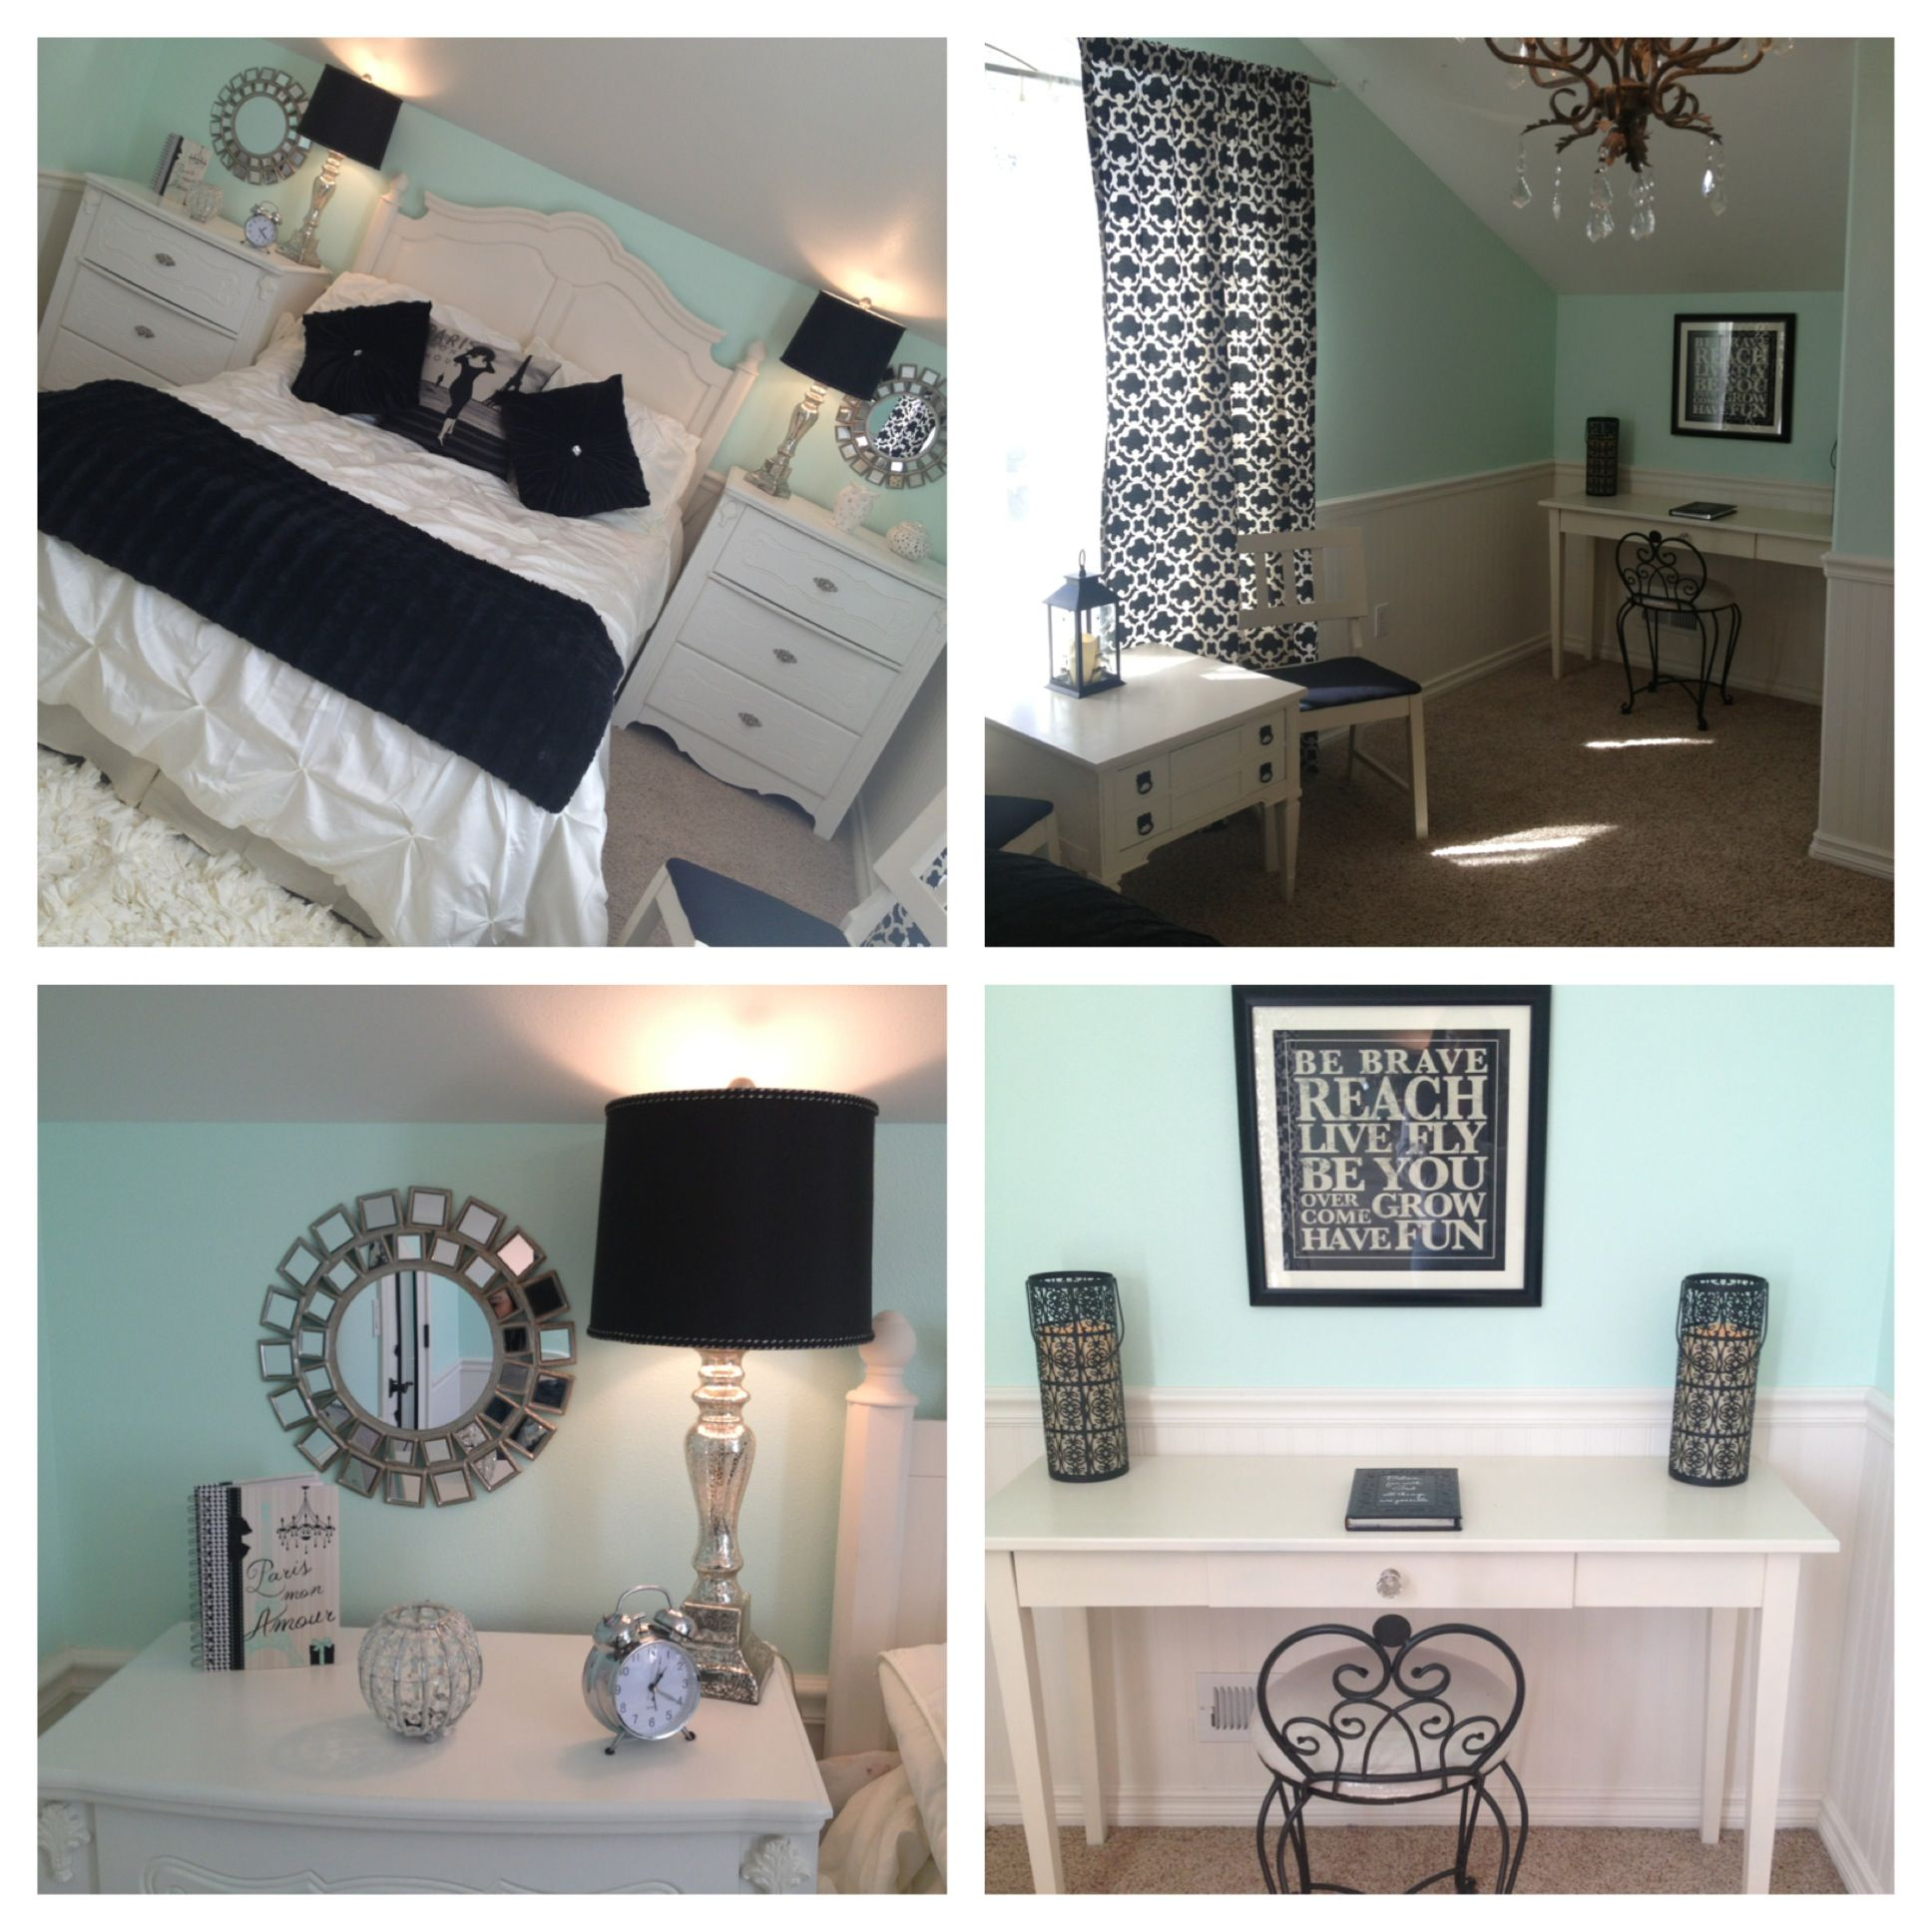 Teenage Room Theme Ideas Mint Bedroom Teen Girl 39s Bedroom Paris Theme With Silver